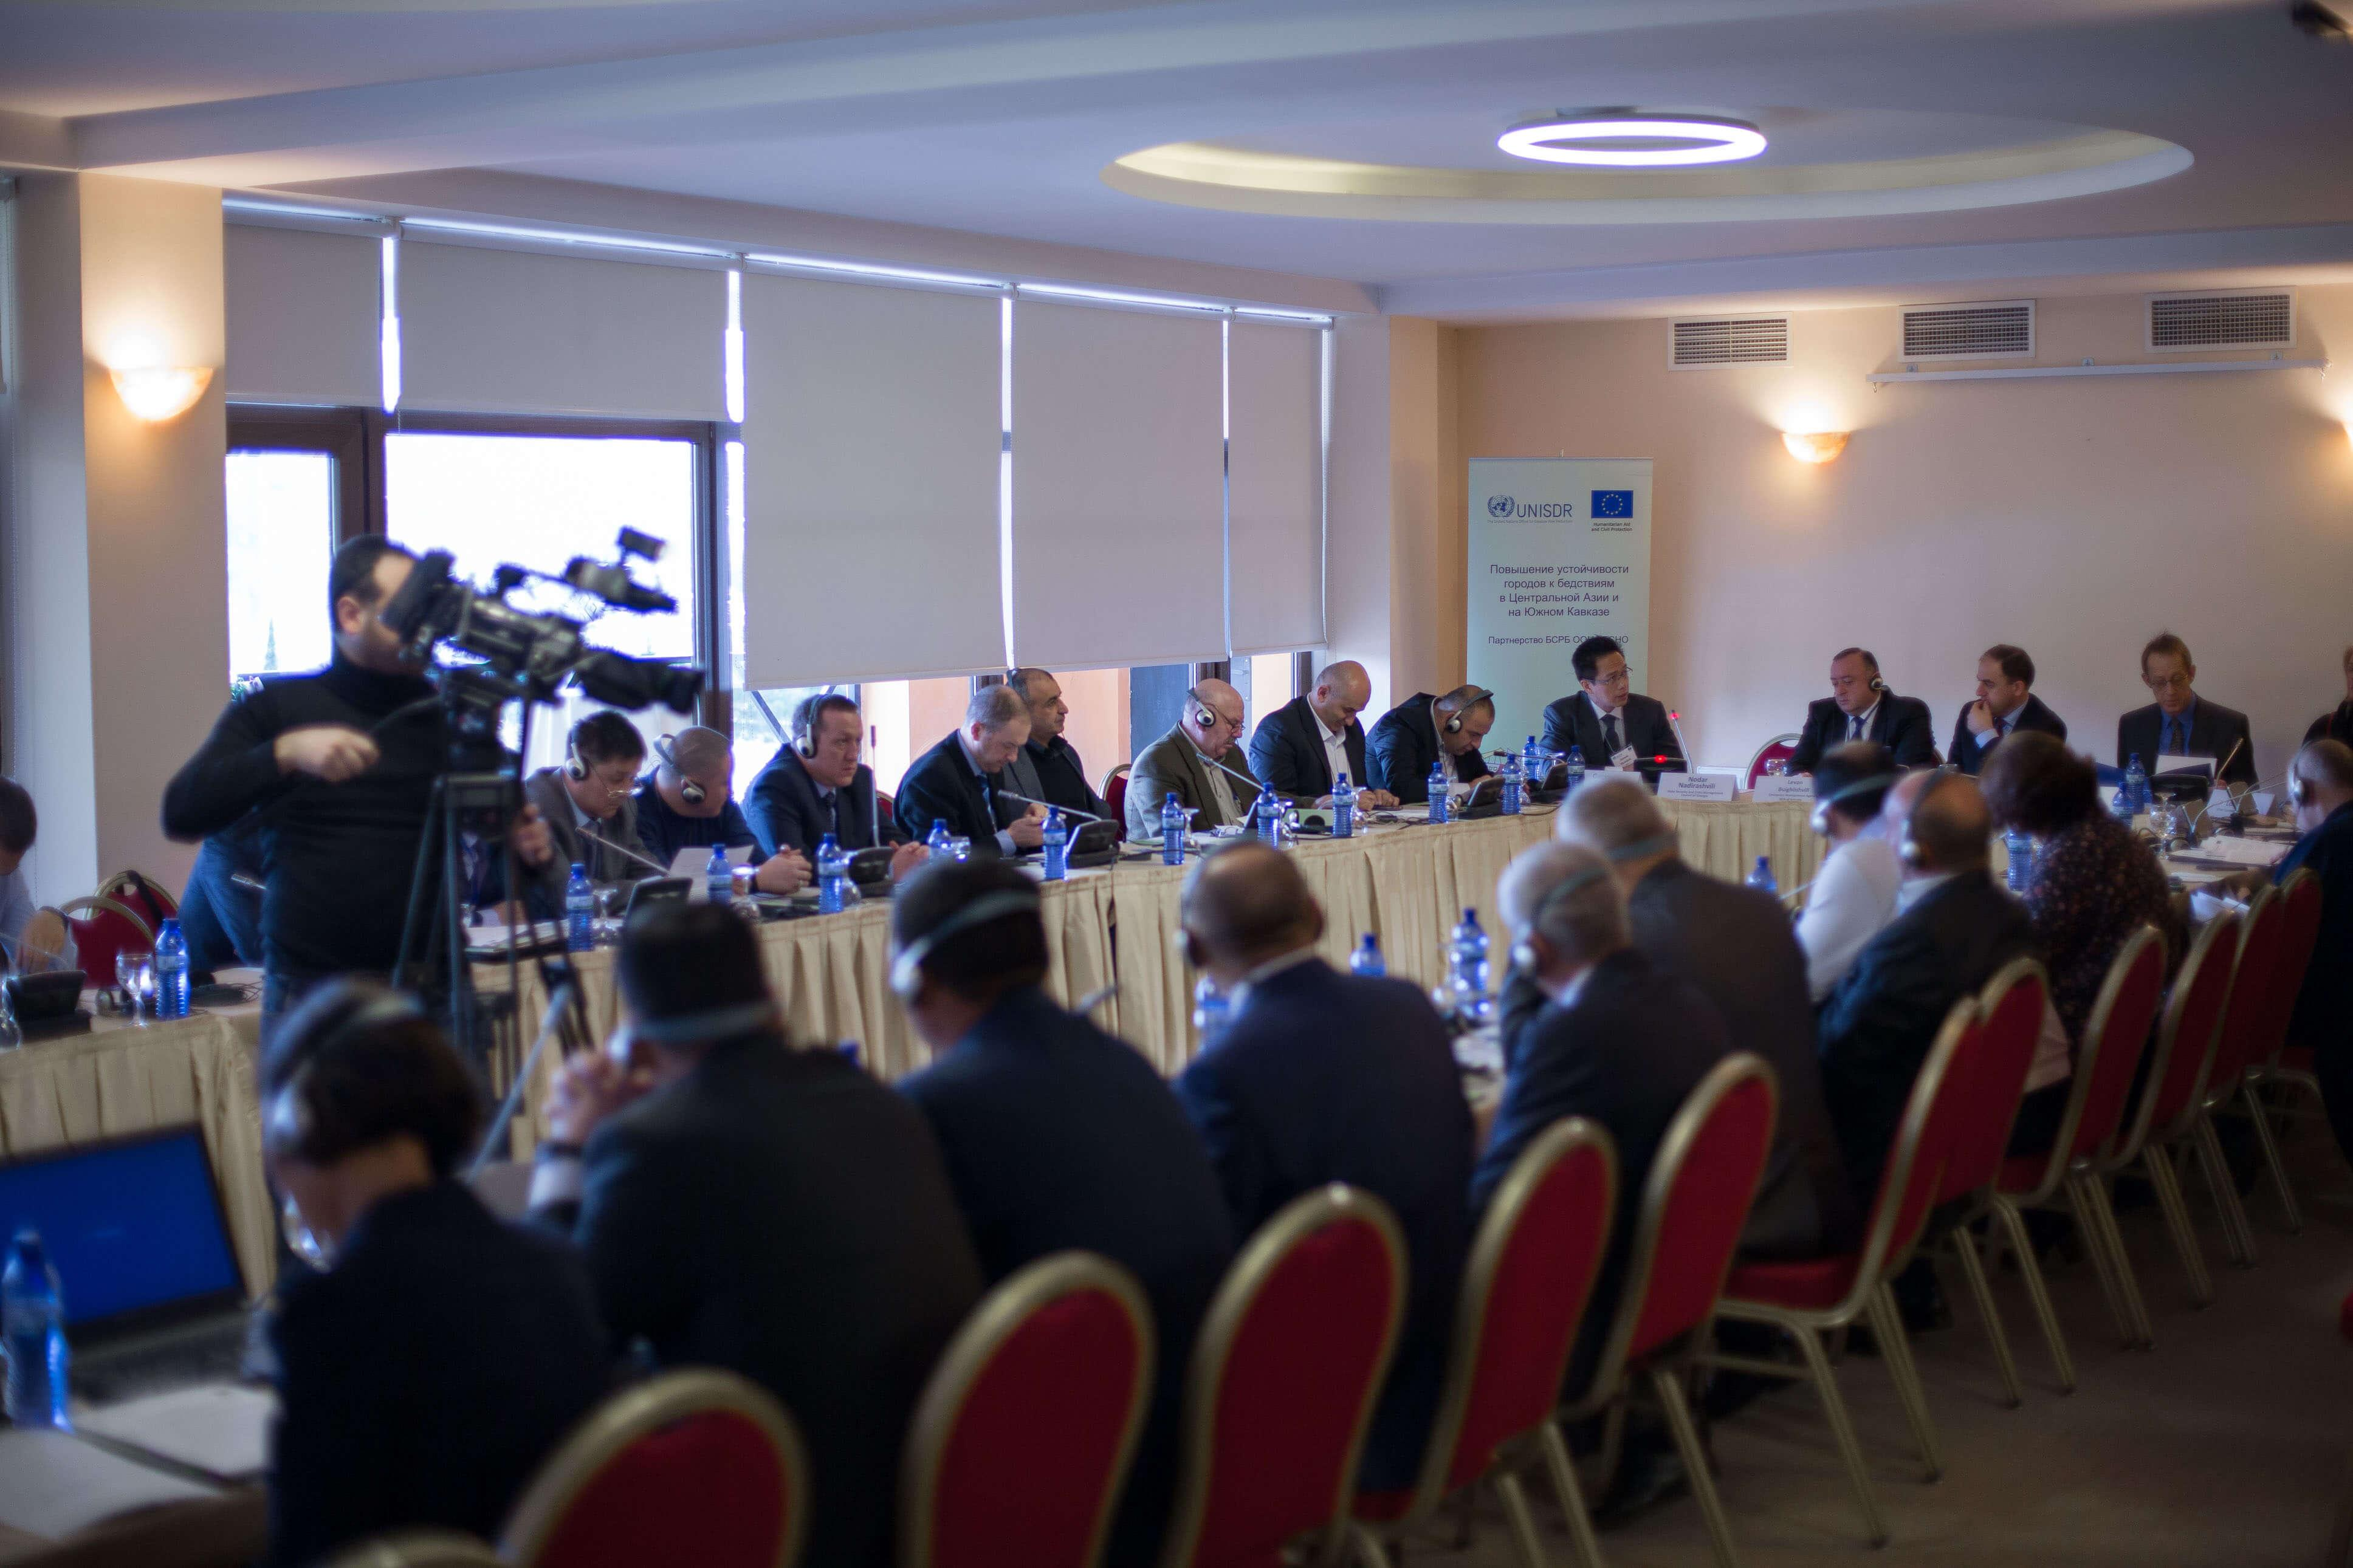 Workshop on the Resilient Cities Project in Central Asia and South Caucasus, Tbilisi, Georgia, 11 November 2015 Roundtable